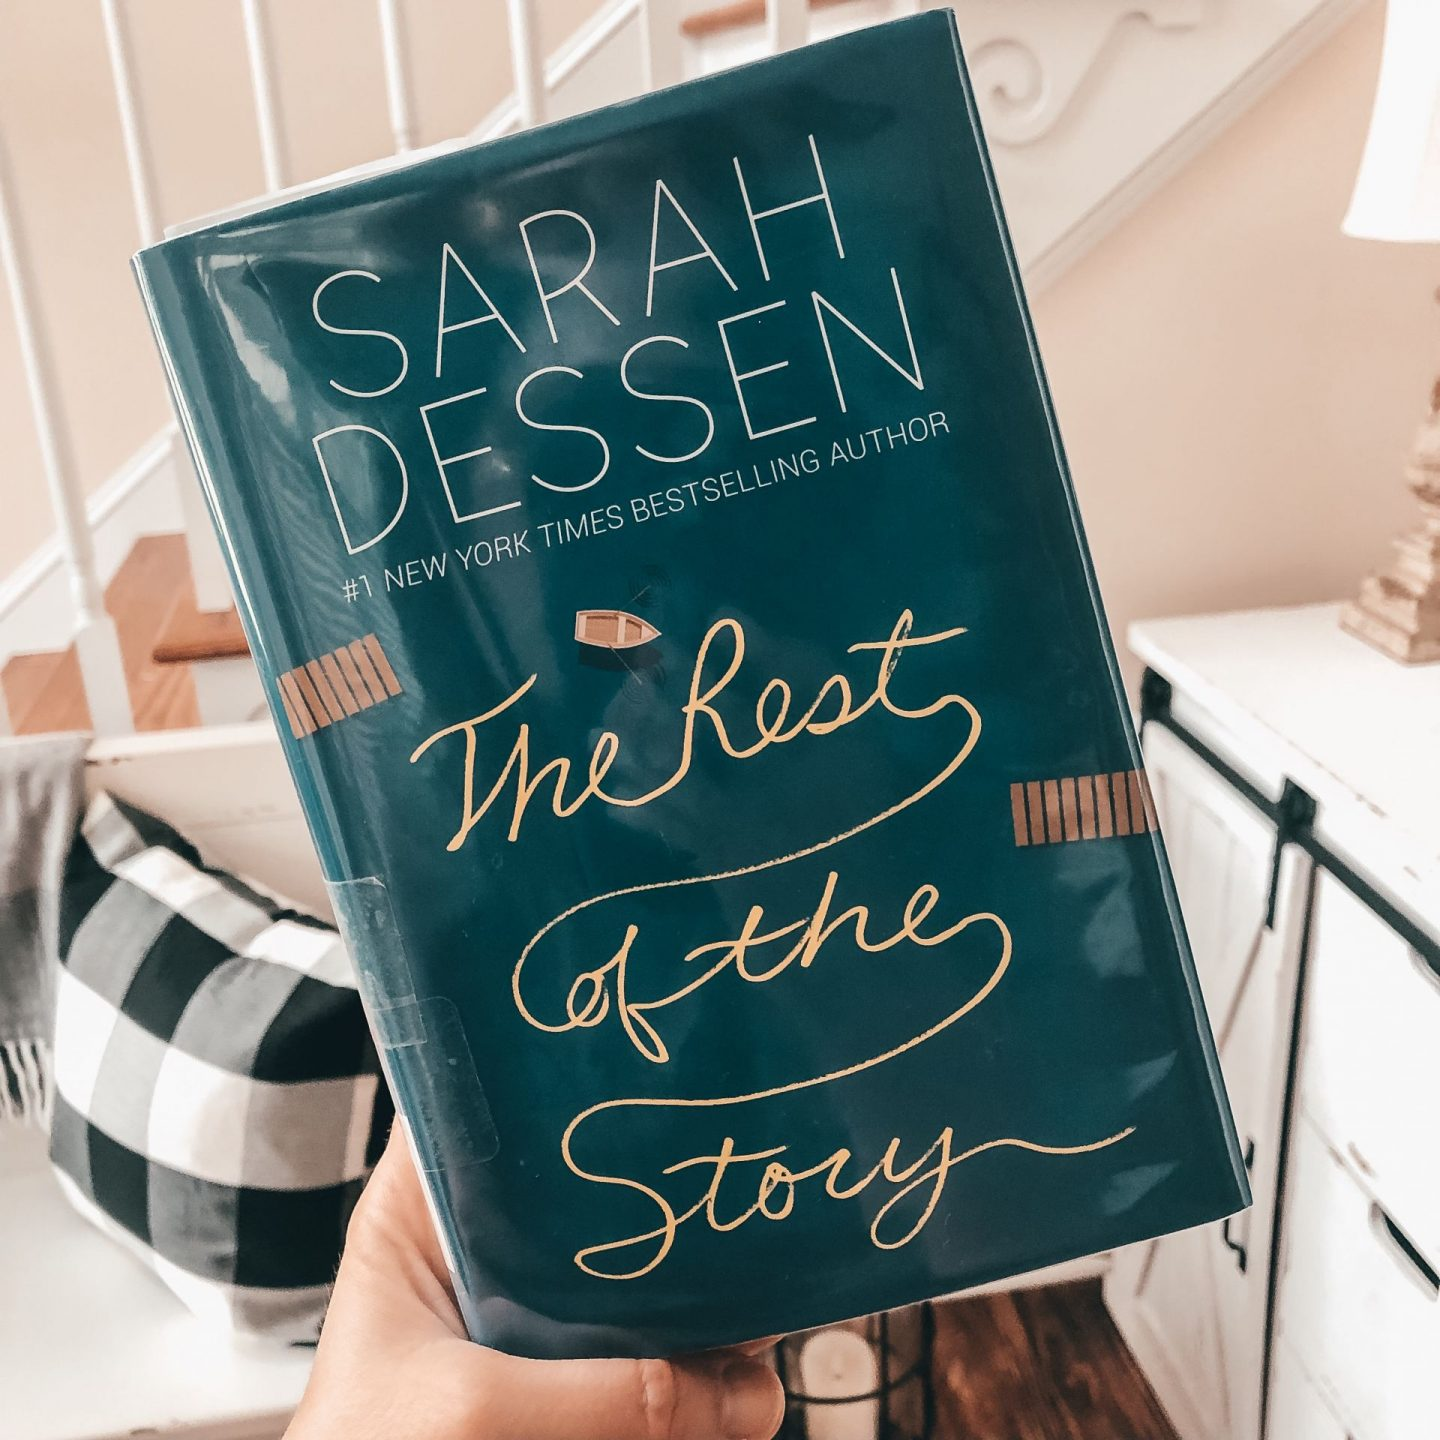 NC blogger Rebecca Lately shares her five favorite books of 2019.  Check it out if you need a book recomendation for the new year!